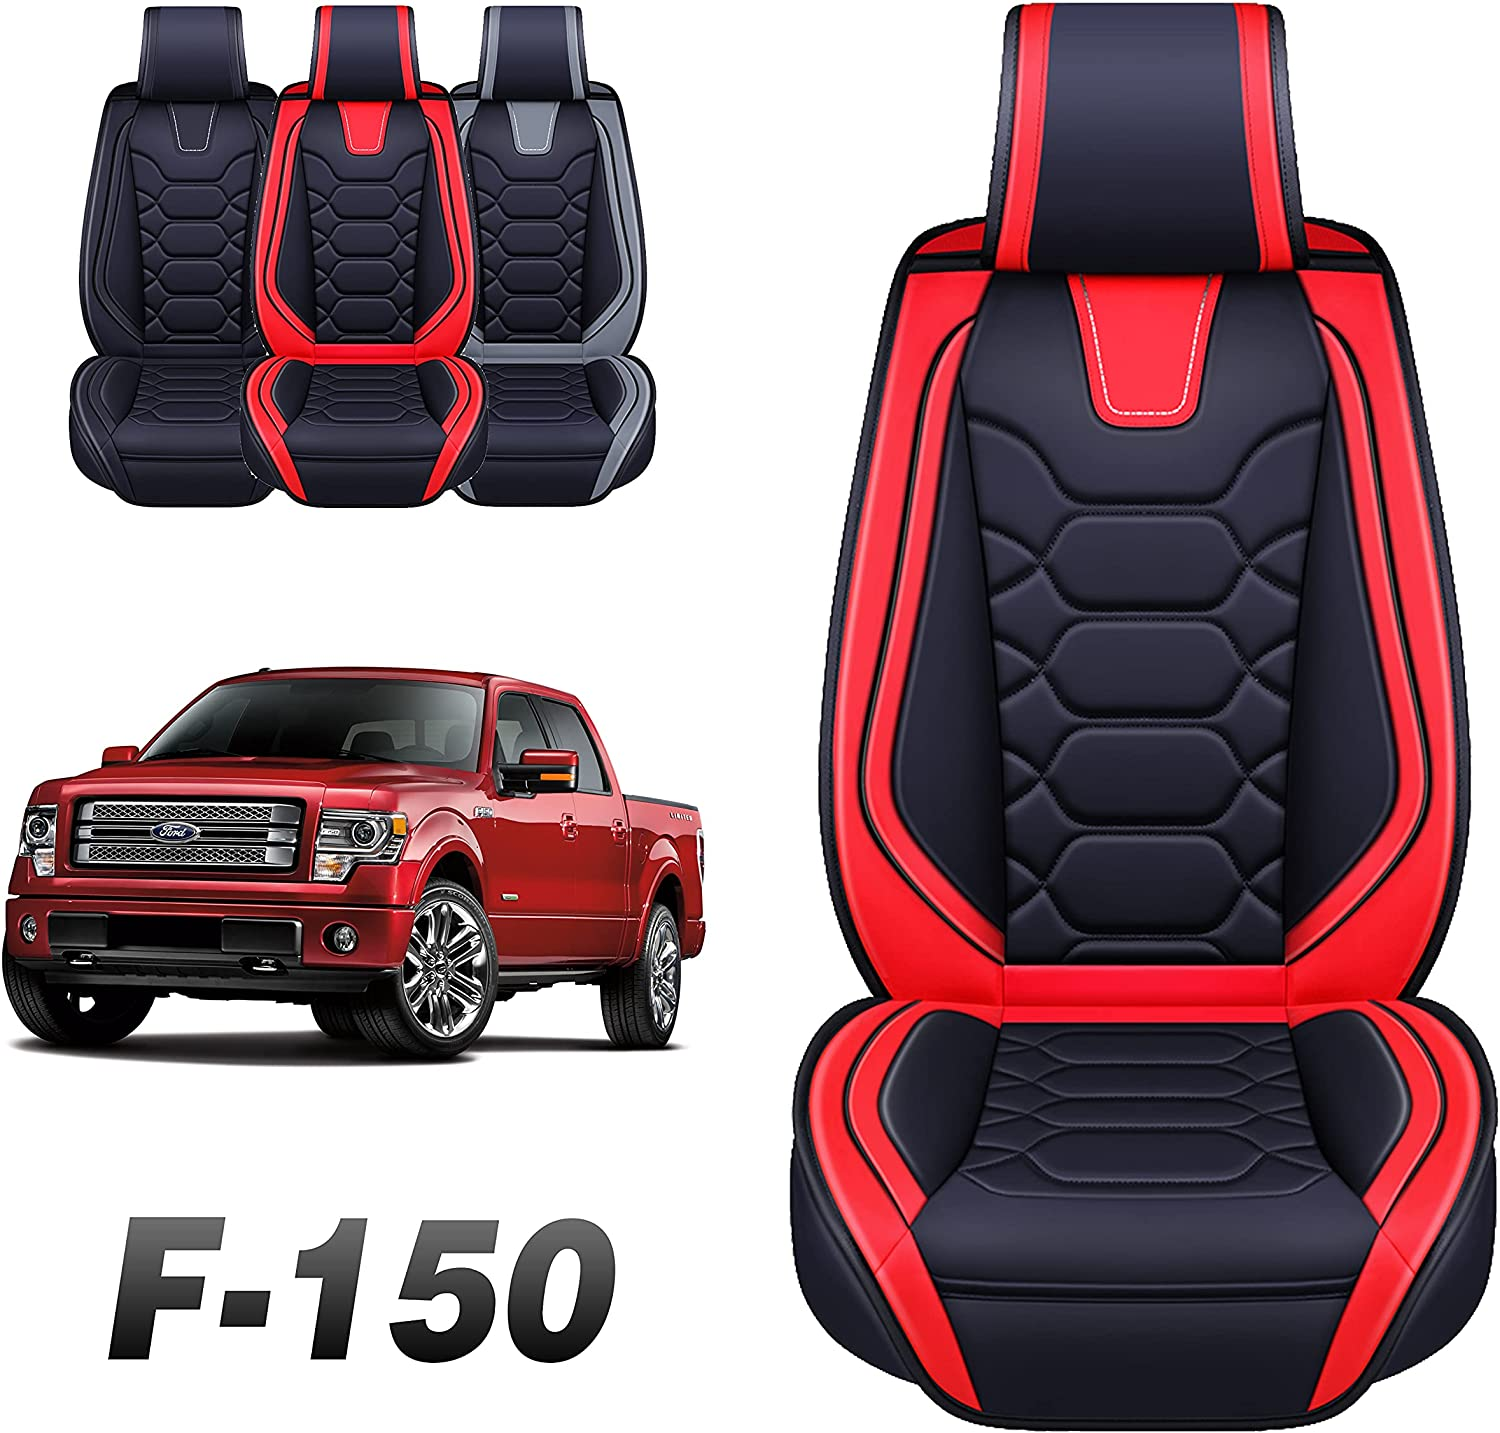 Oasis Auto Fashion Tailor Fit Seat Compatible Free shipping anywhere in the nation Ford 2009-2022 with Covers